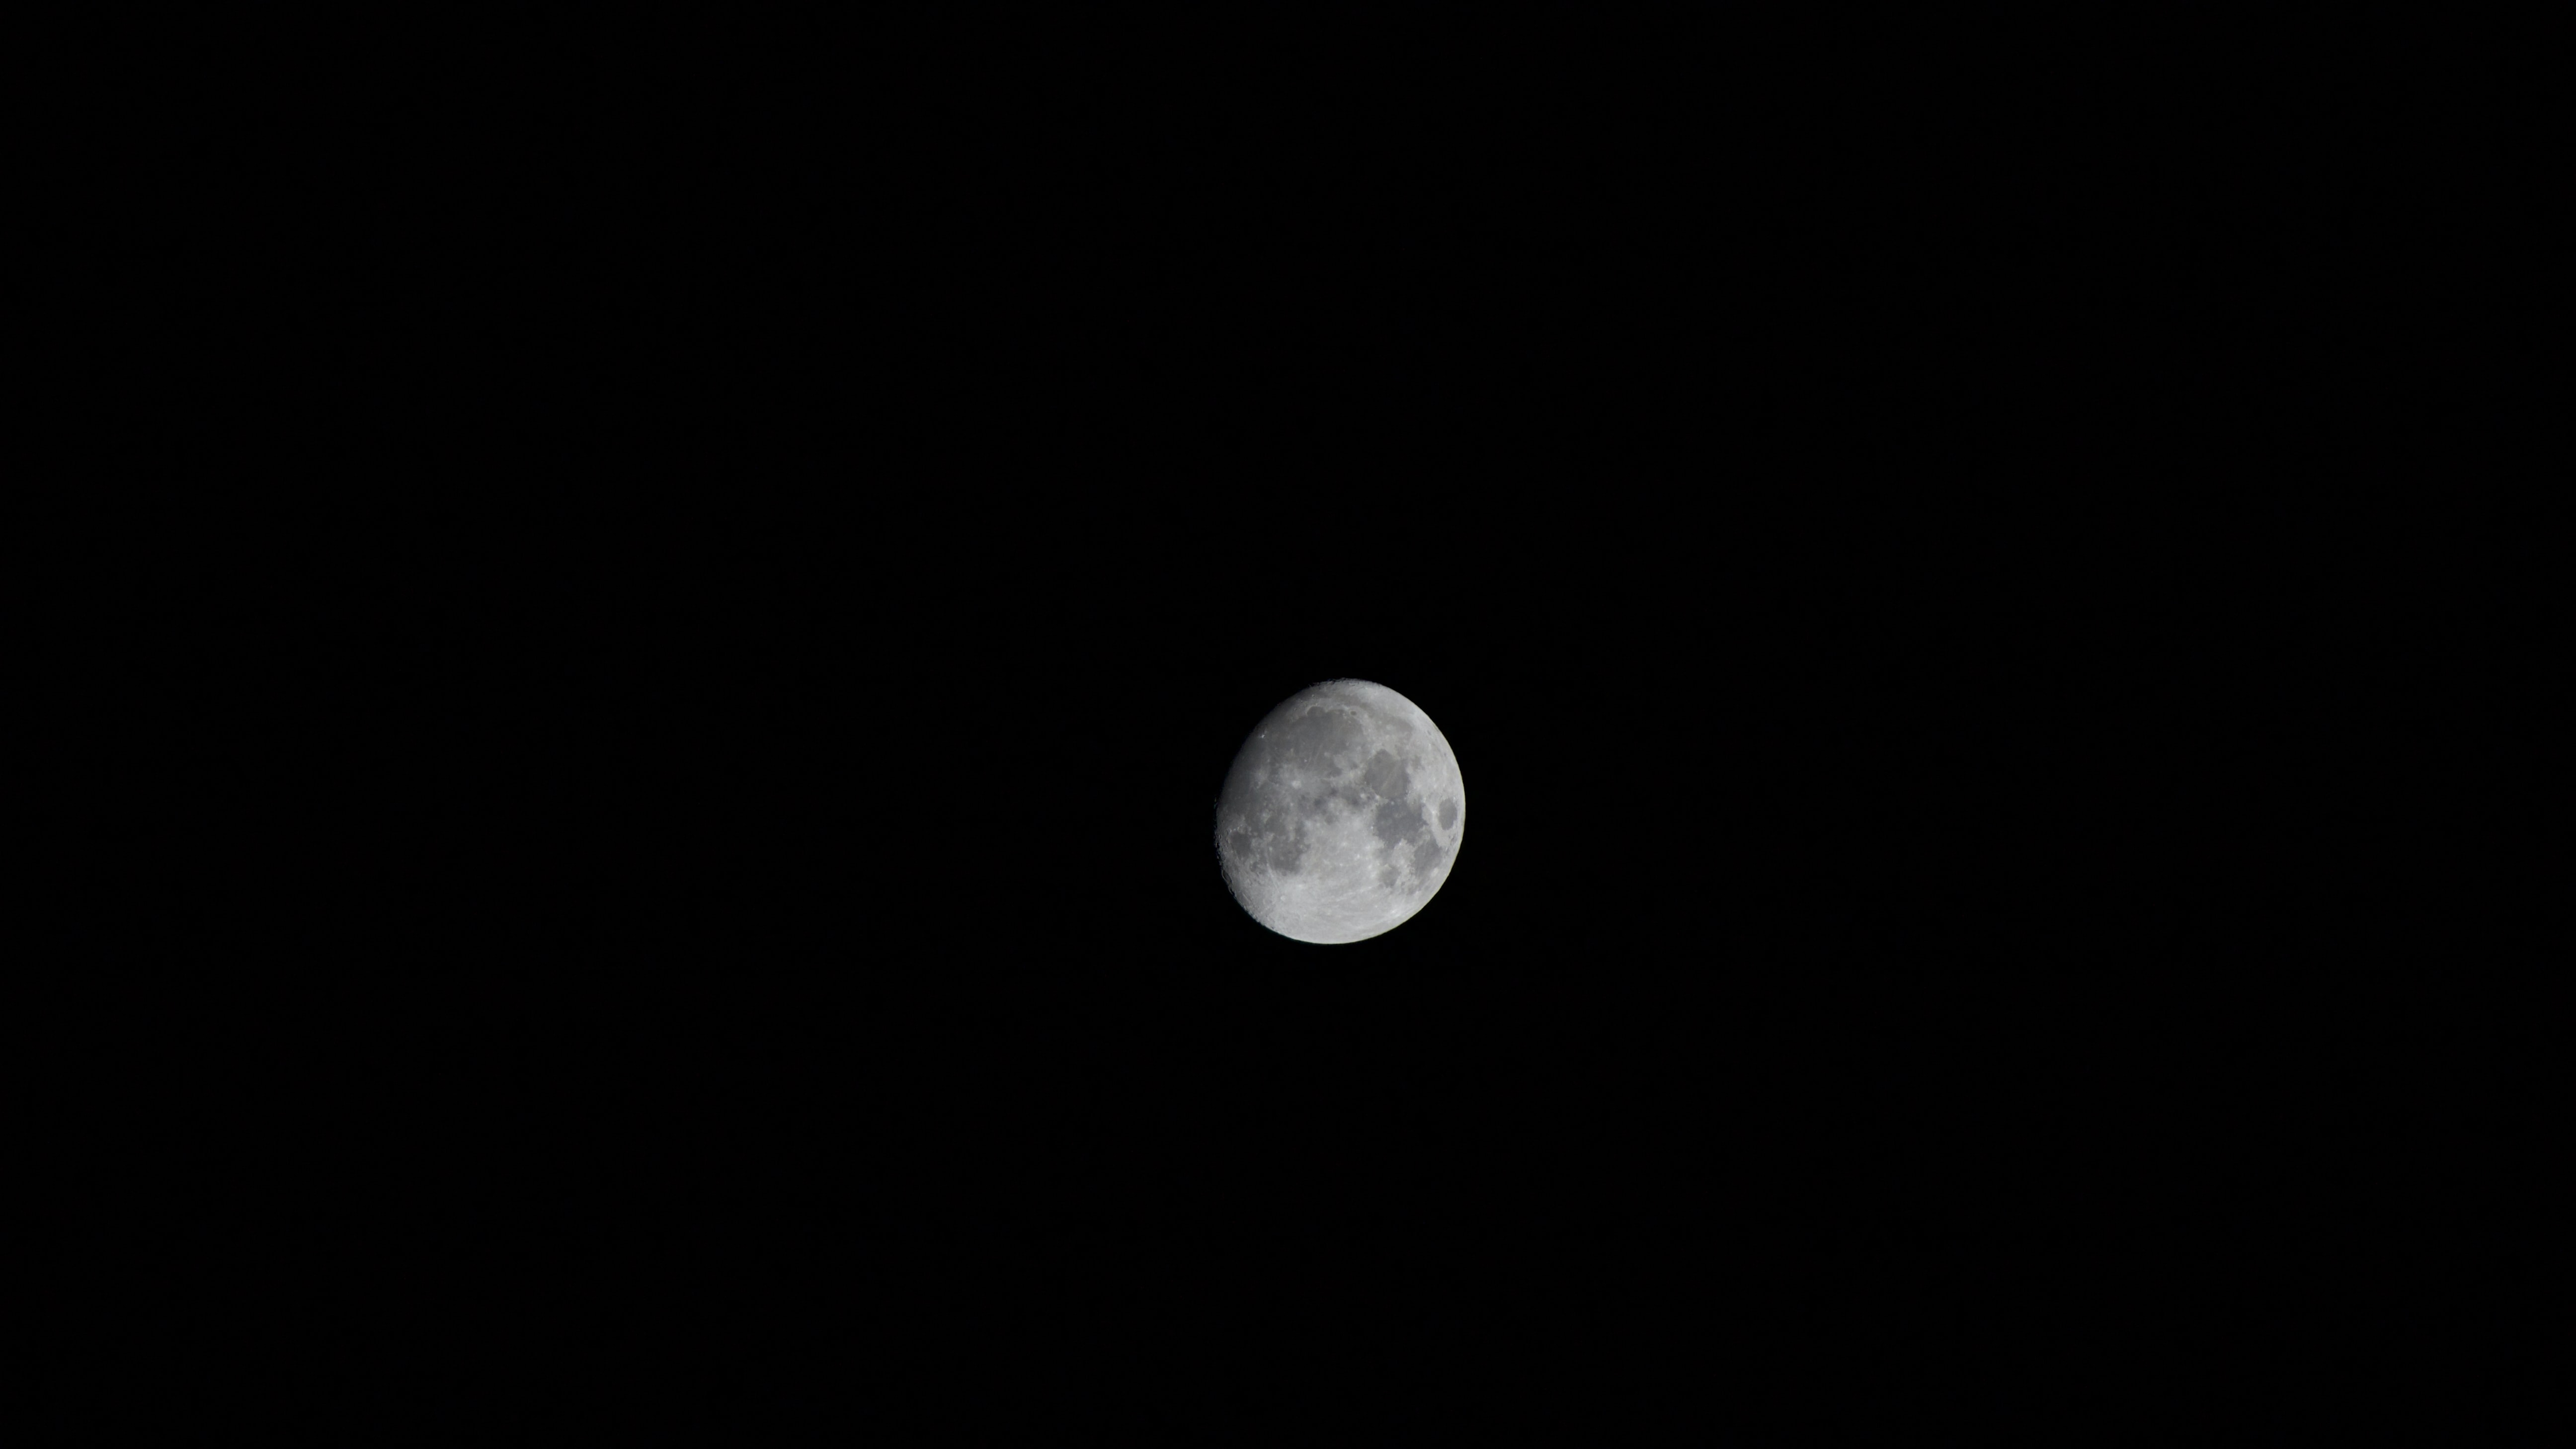 moon during nighttime